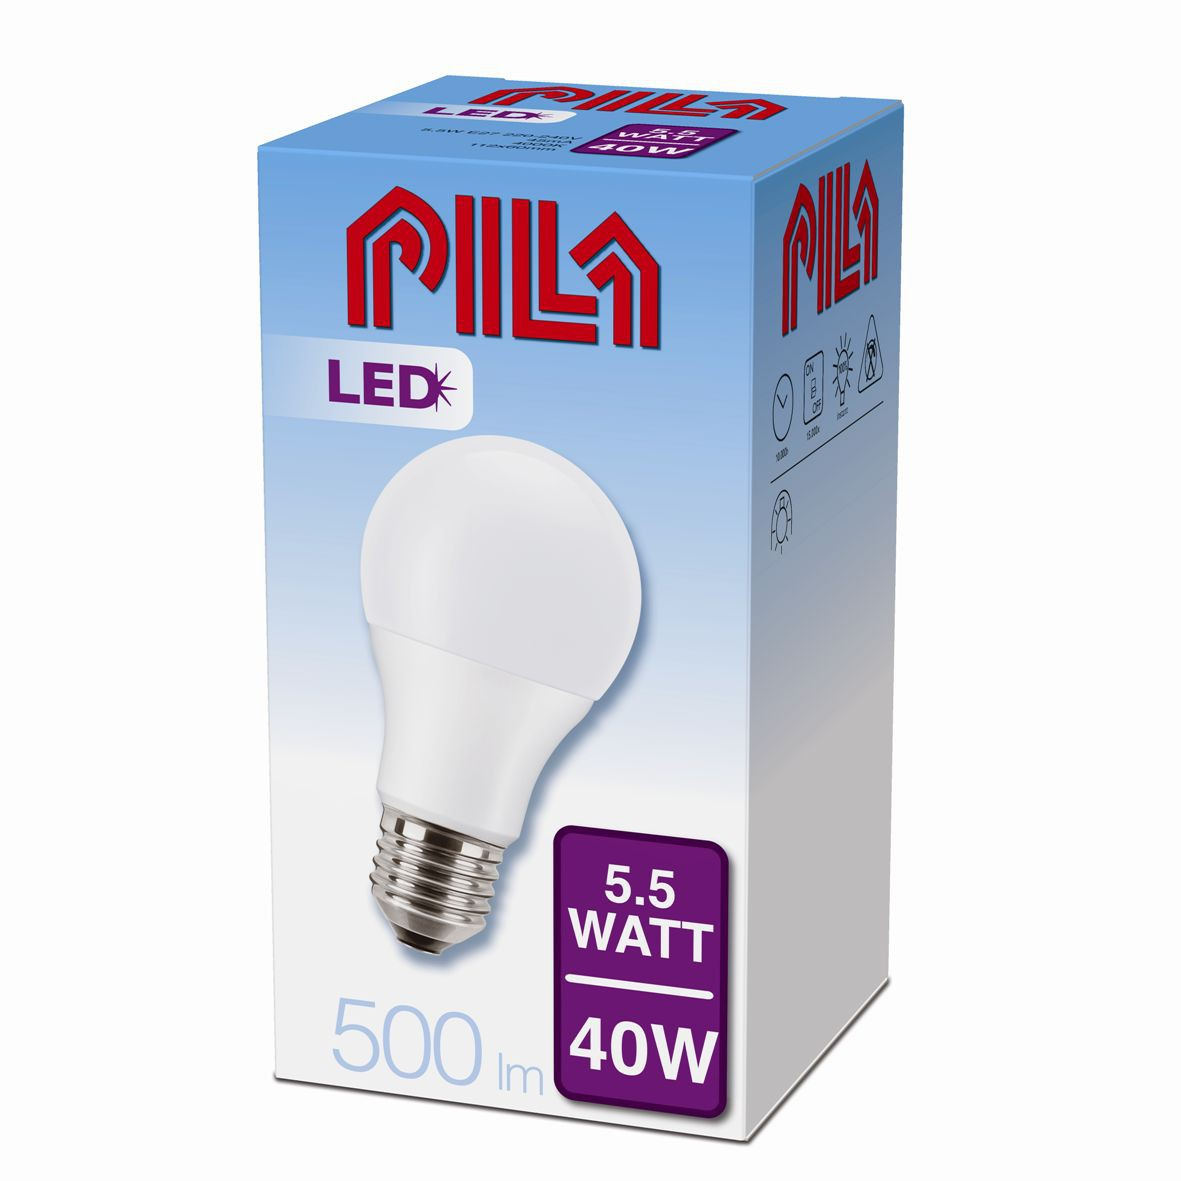 LED žárovka úsporná Philips 5,5W E27 - PILA LED BULB 40W E27 840 A60 FR ND